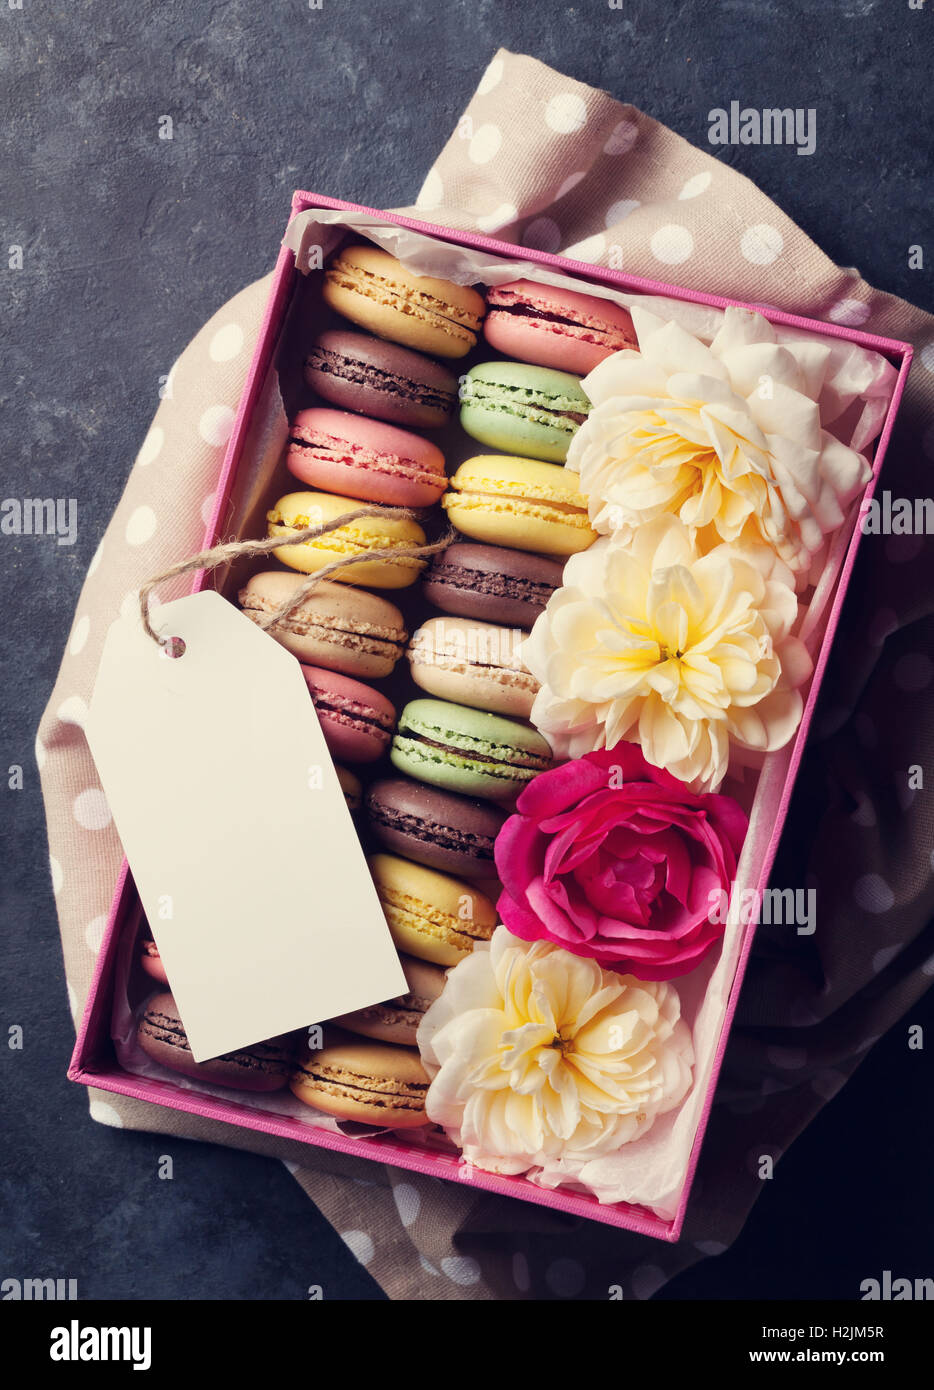 Colorful macaroons and flowers on stone table. Sweet macarons in gift box. Top view. Toned - Stock Image